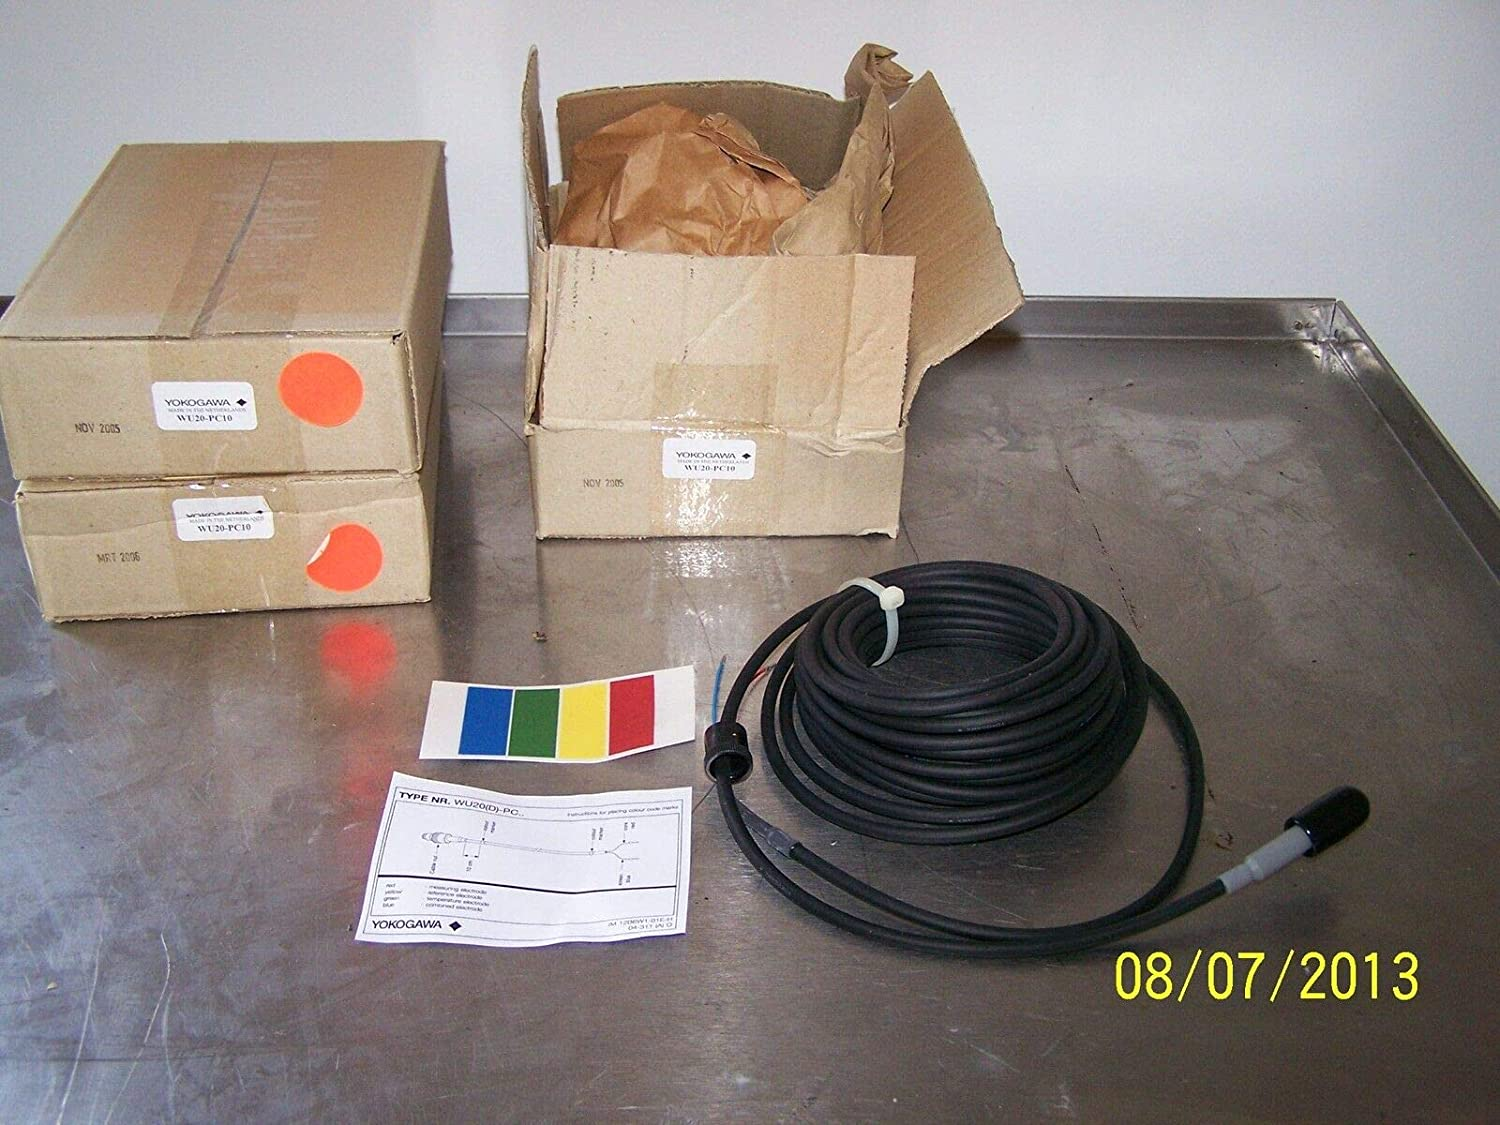 sold out Max 46% OFF labtechsales Yokogawa WU20-PC10 Coax Cable Electro PH for Single